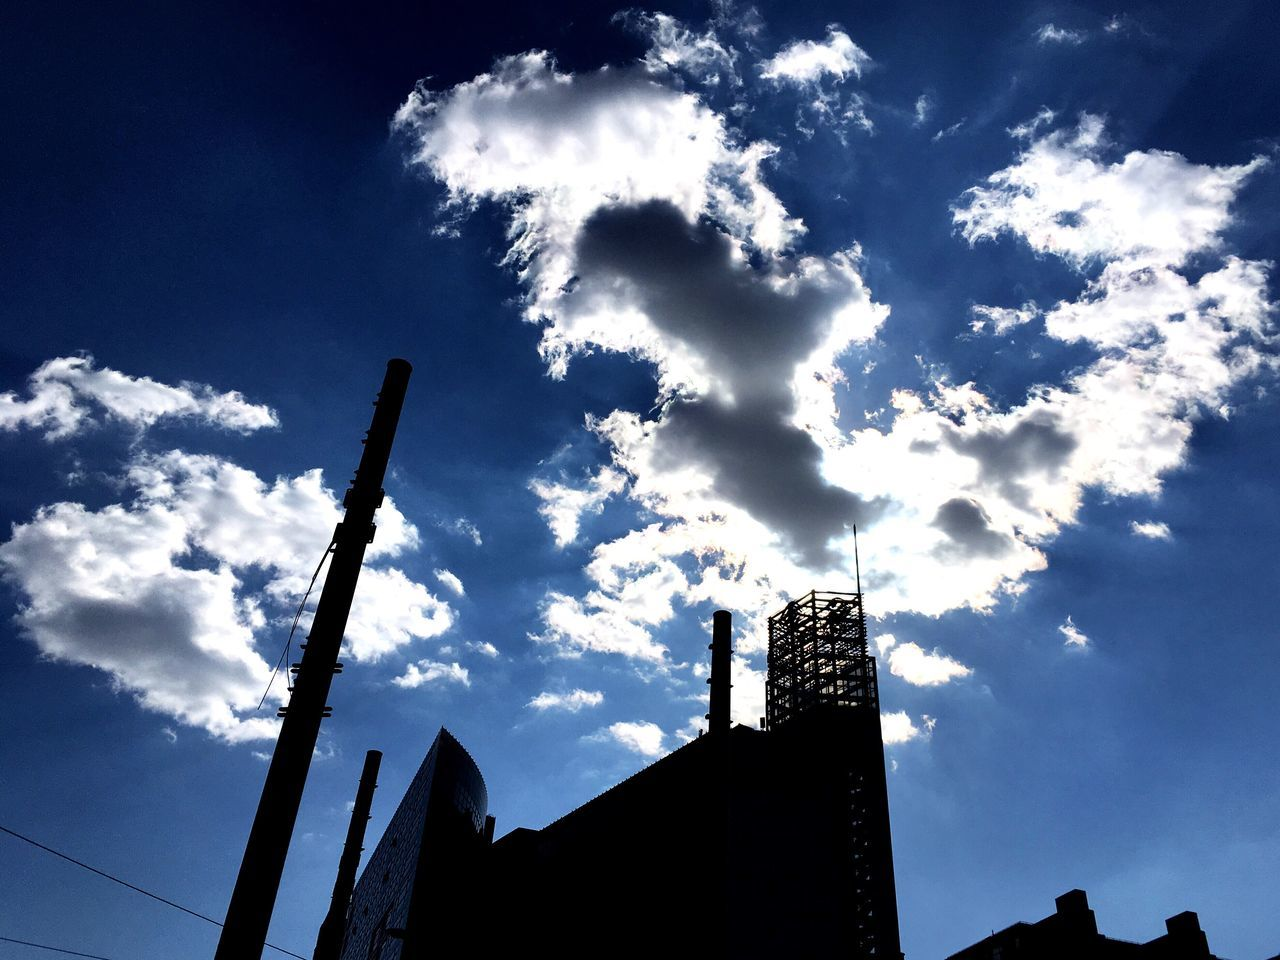 sky, built structure, architecture, low angle view, building exterior, cloud - sky, silhouette, no people, day, outdoors, smoke stack, skyscraper, nature